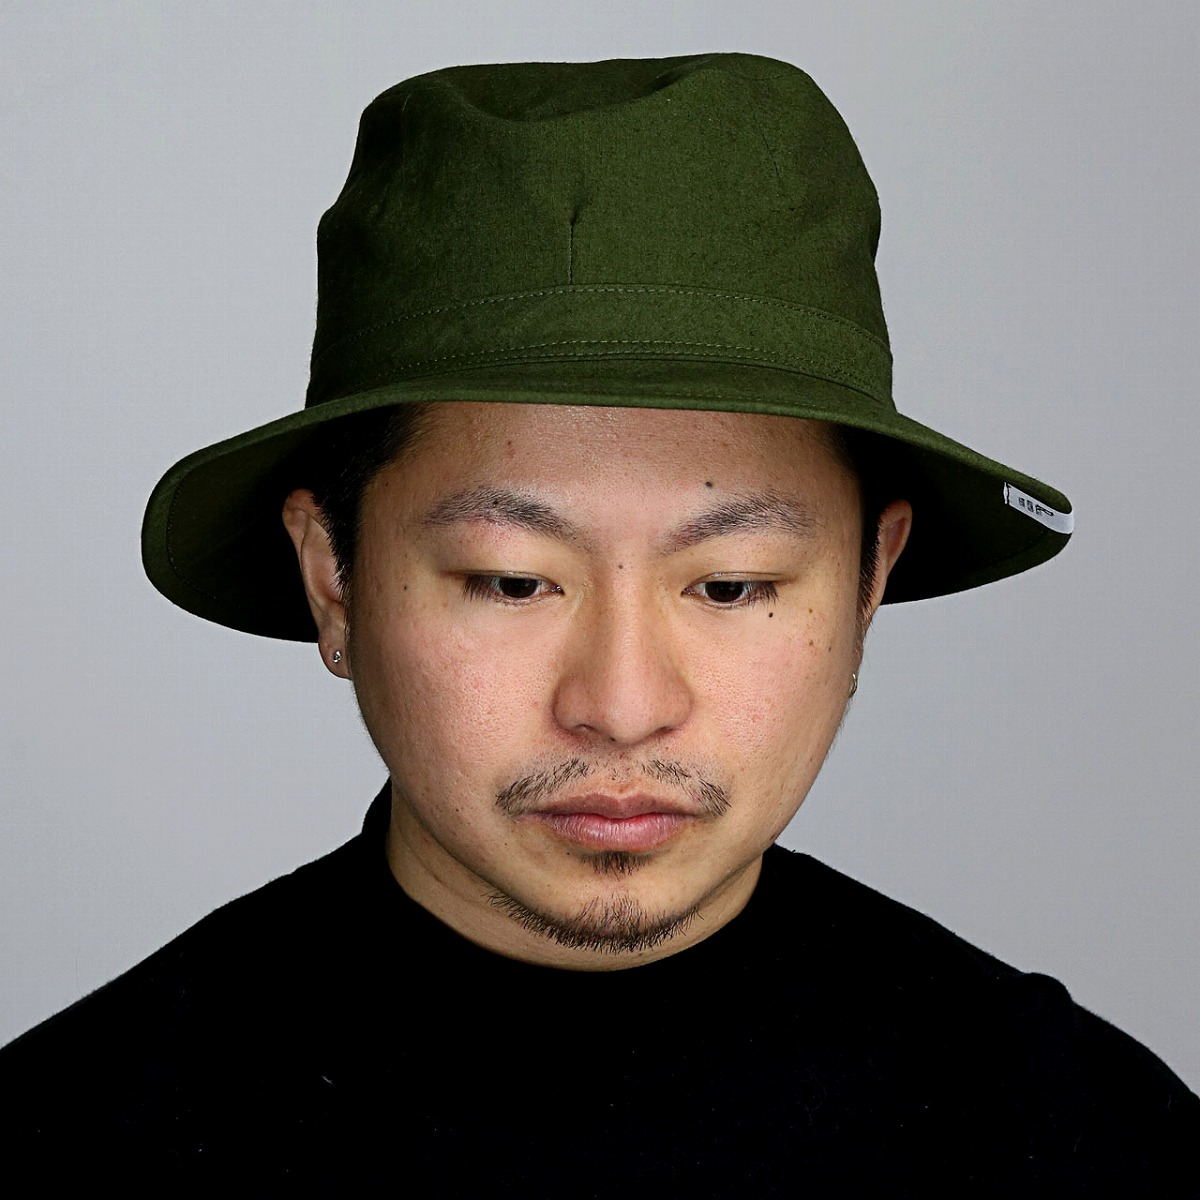 7d382c83150 Tender cotton and the textures that dried lightly of the hemp are put  together and are the hat which it is casual and is easy to use while giving  an ...